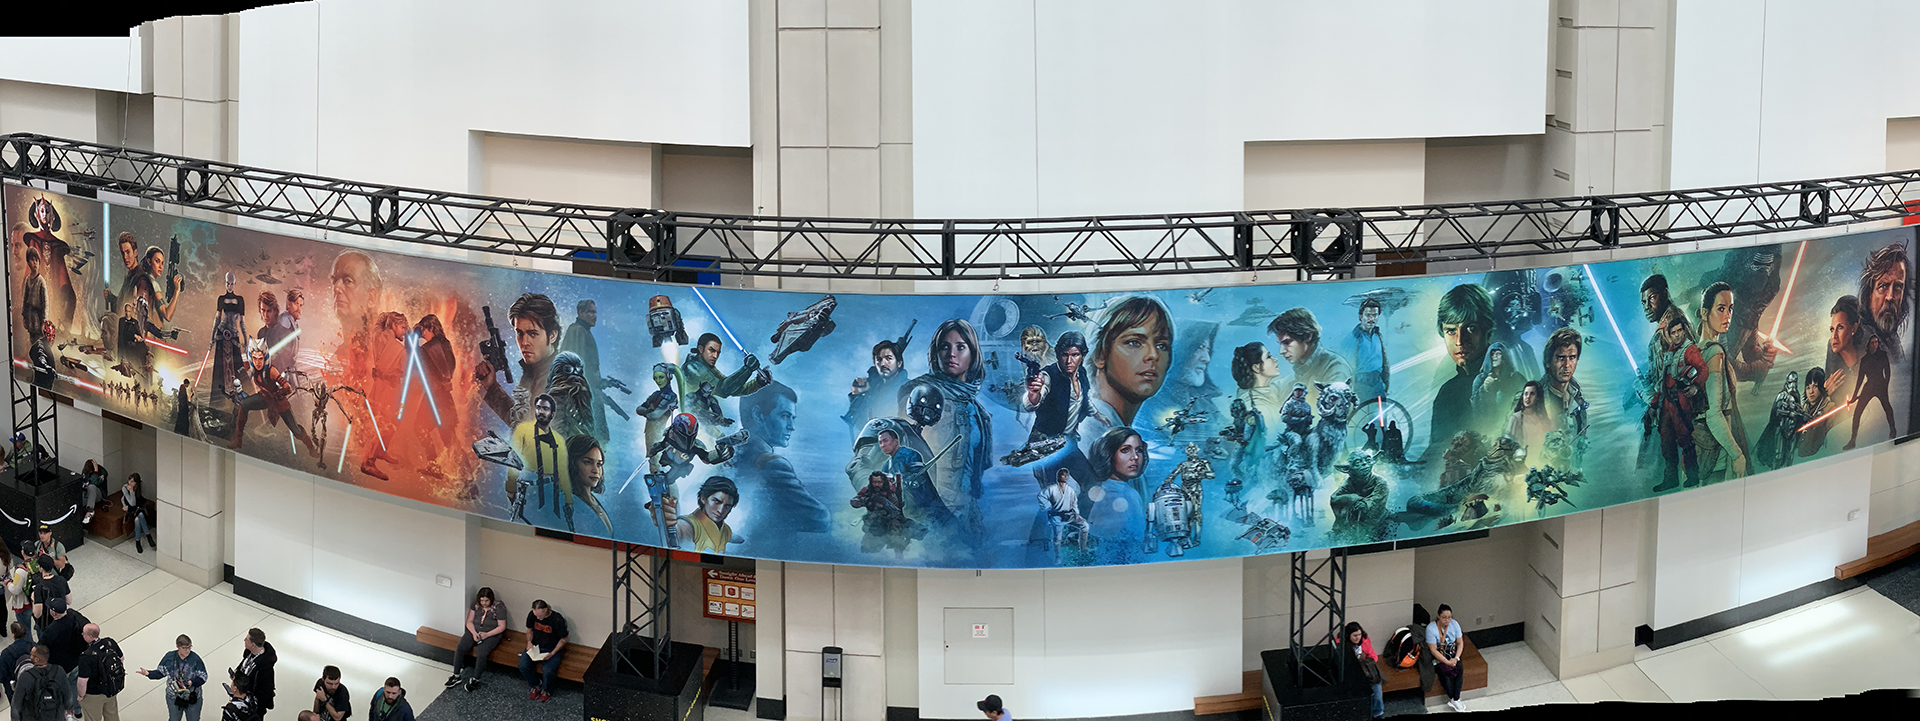 MC_Star_Wars_Mural